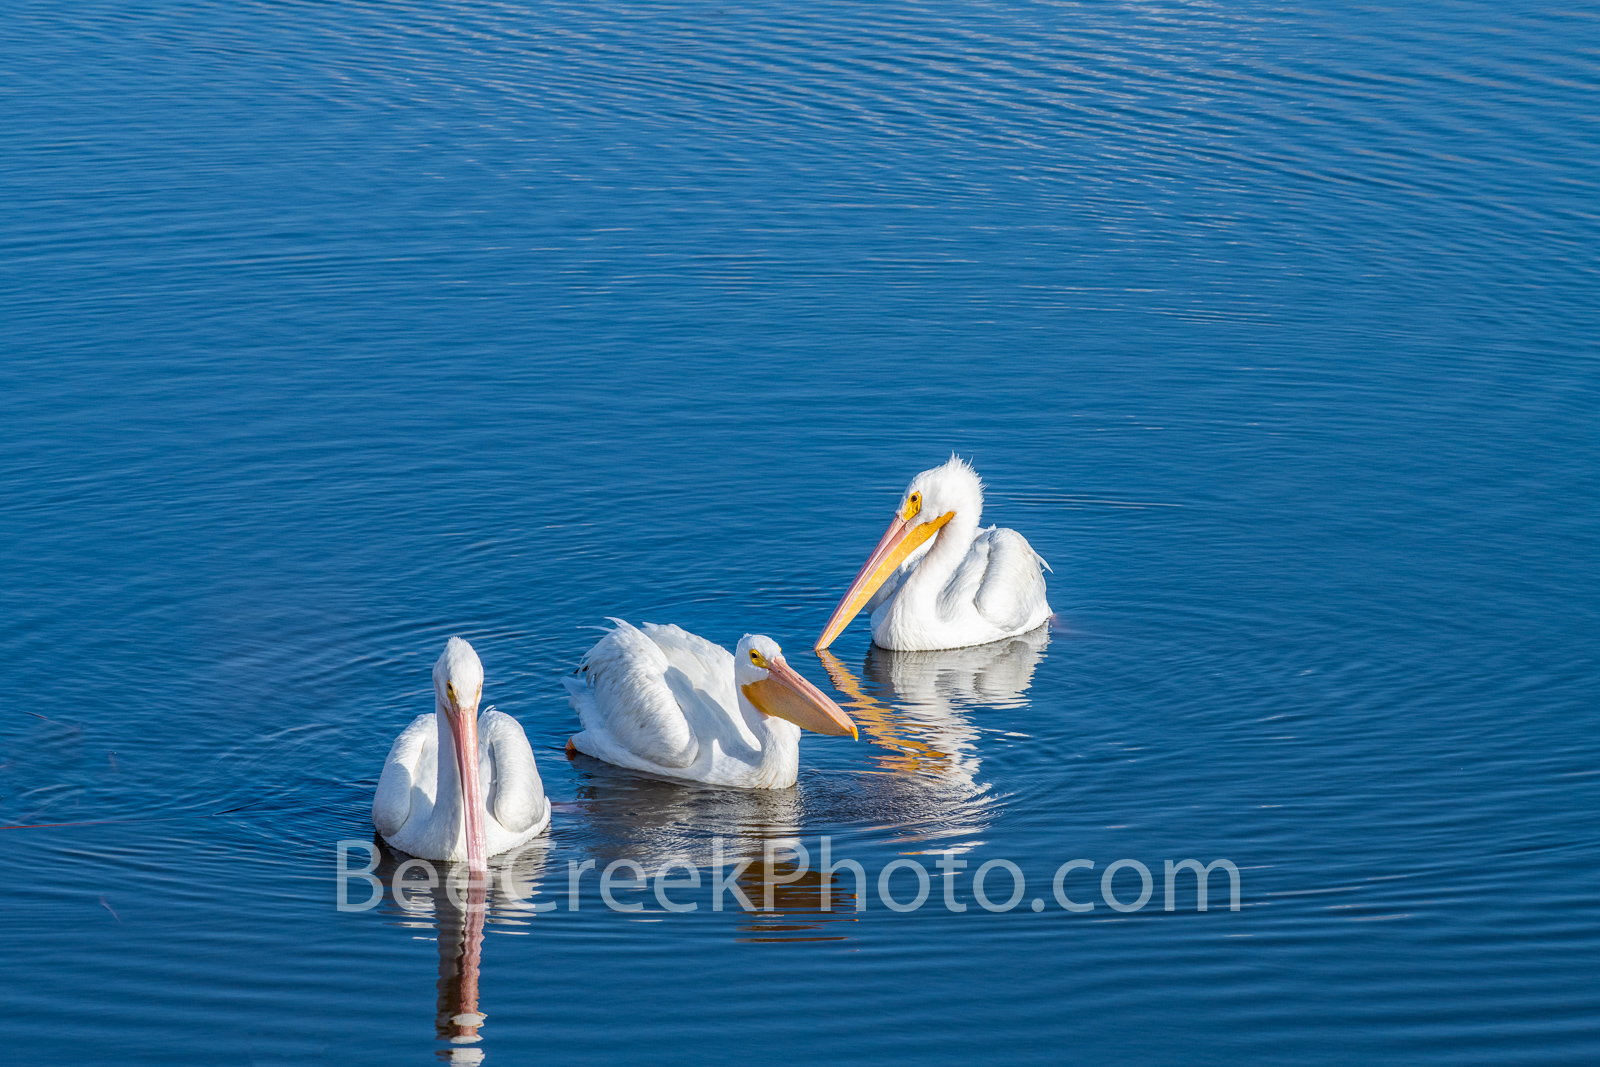 Coastal White Pelican Trio 2 - Twenty years ago we started out photographing birds, so anytime we see a good set up like this...